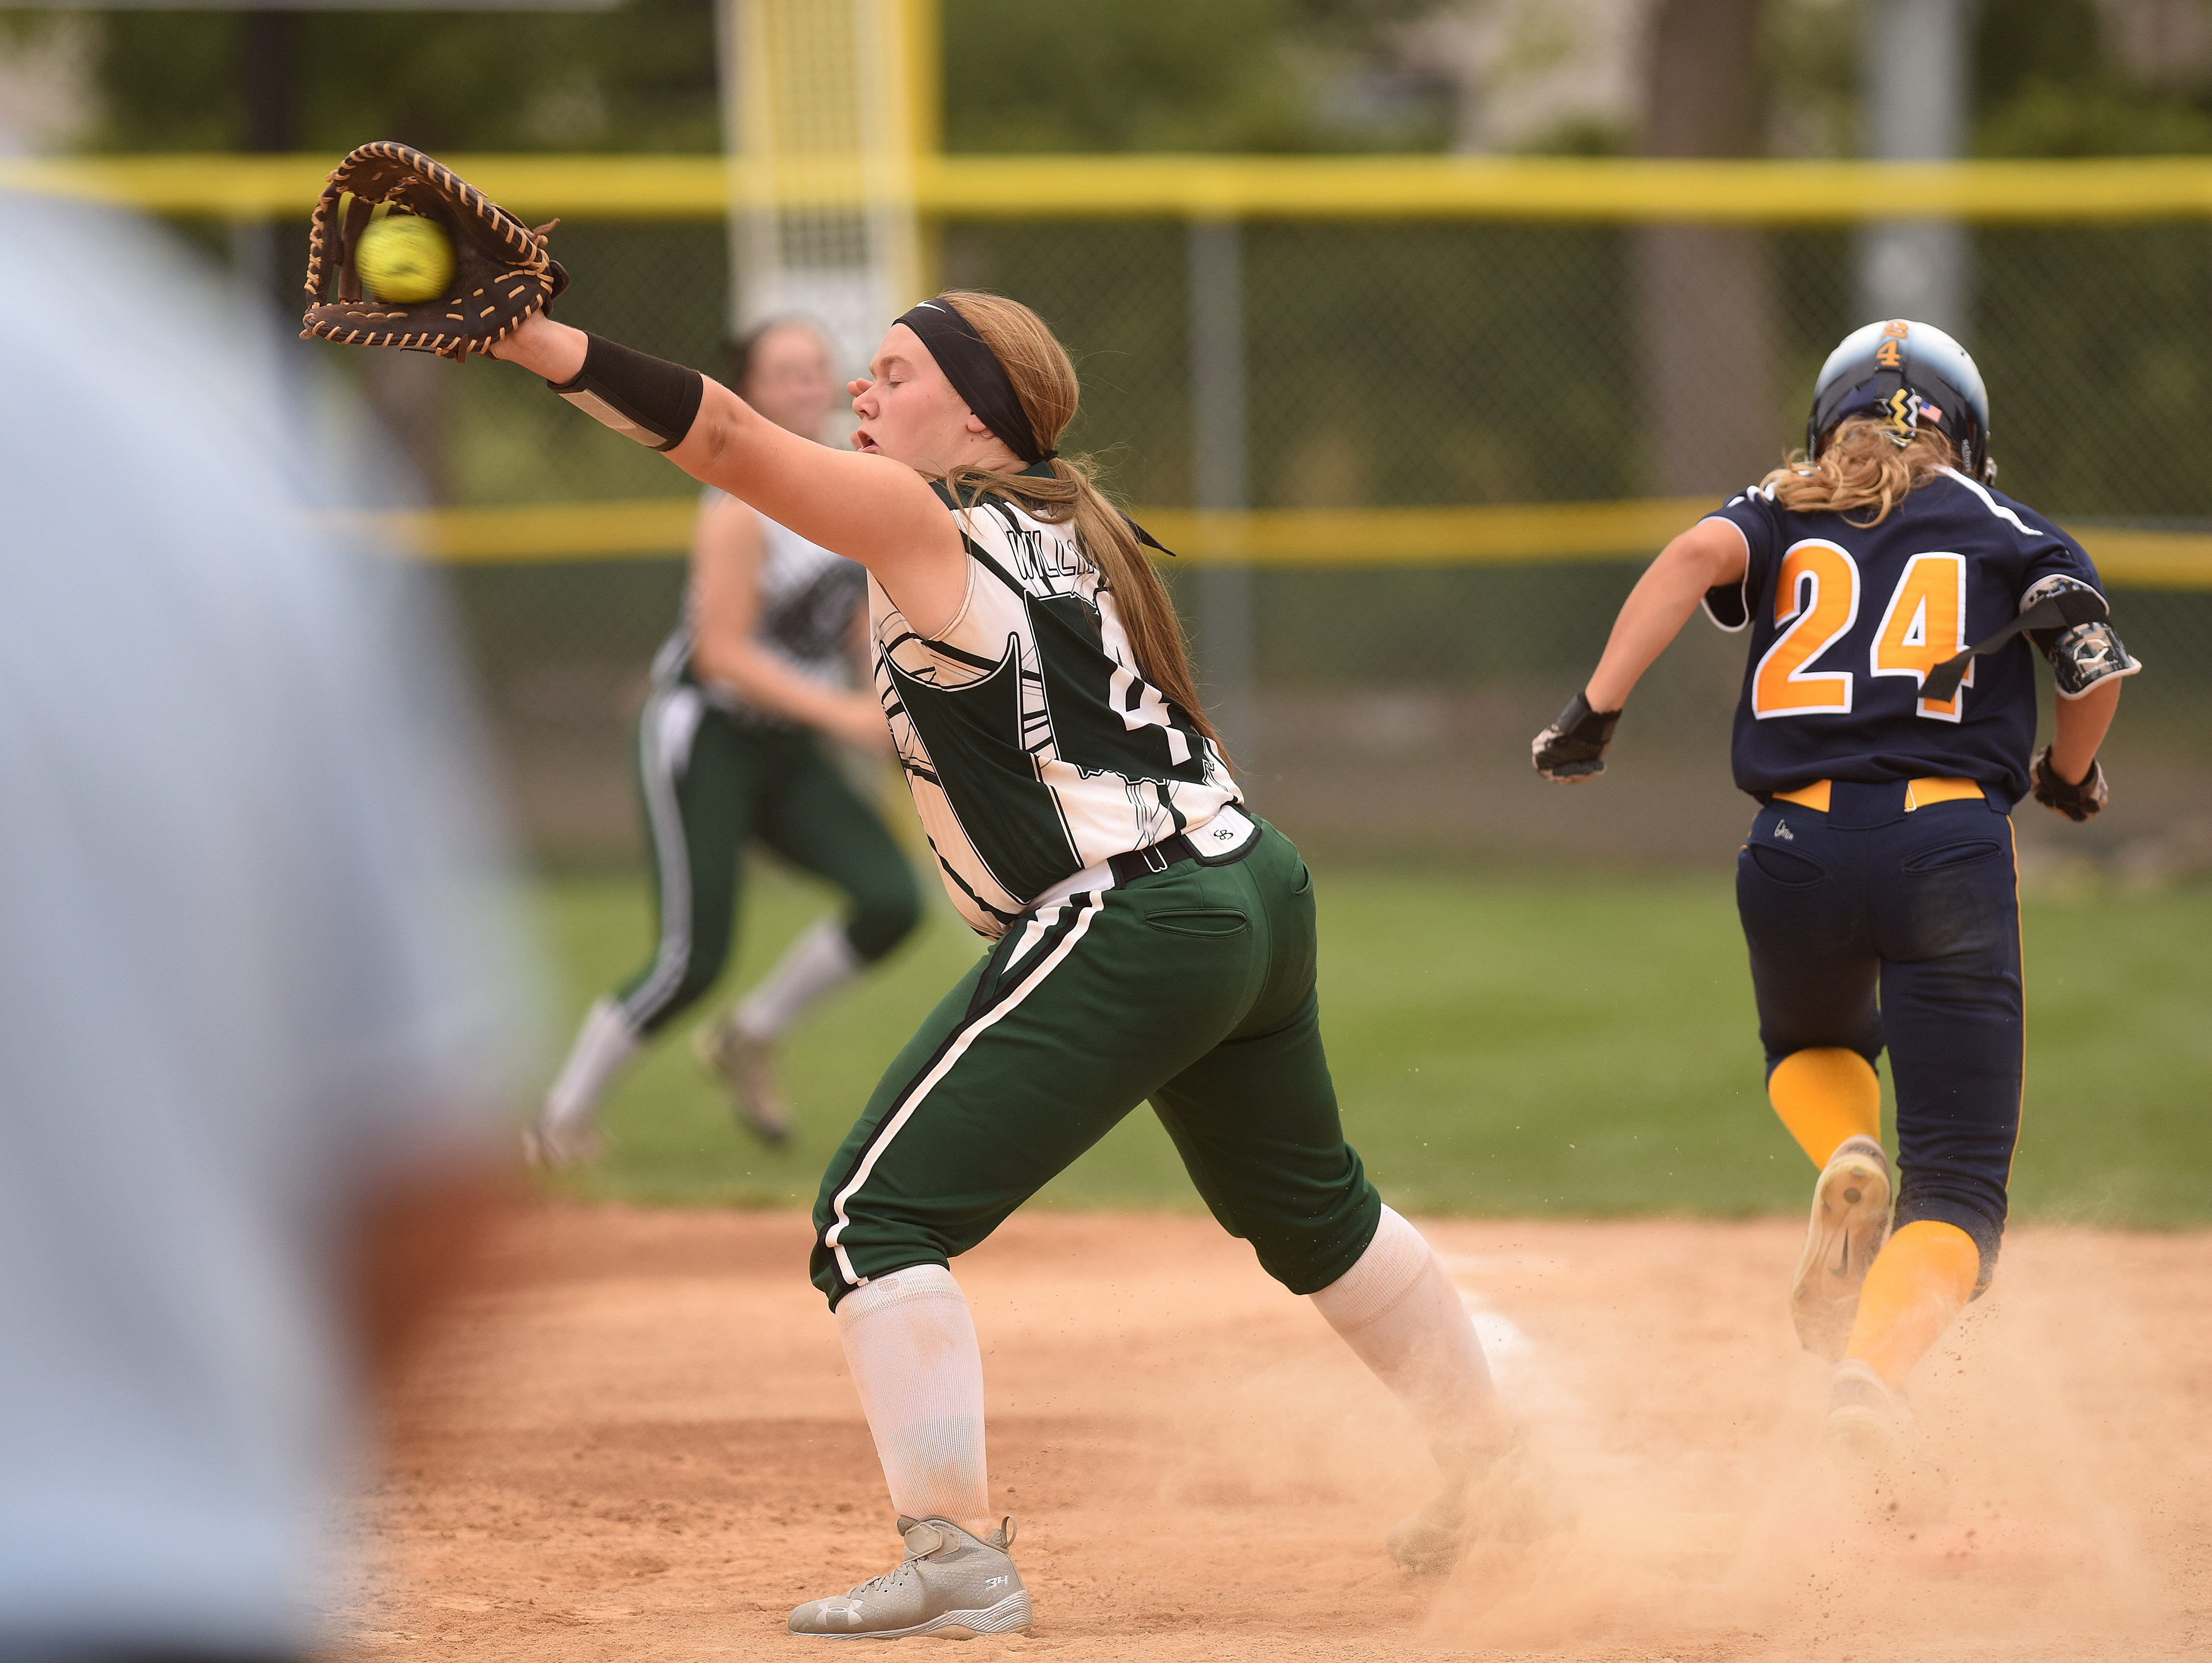 Ohio Lady Lasers Green's #4 Reagan Williamson attempts to throw New Lenox Lighting's #24 Ella Le Monier out at first base during the ASA 14U national softball tournament at Sherman Park in Sioux Falls, S.D., Monday, Aug. 1, 2016.